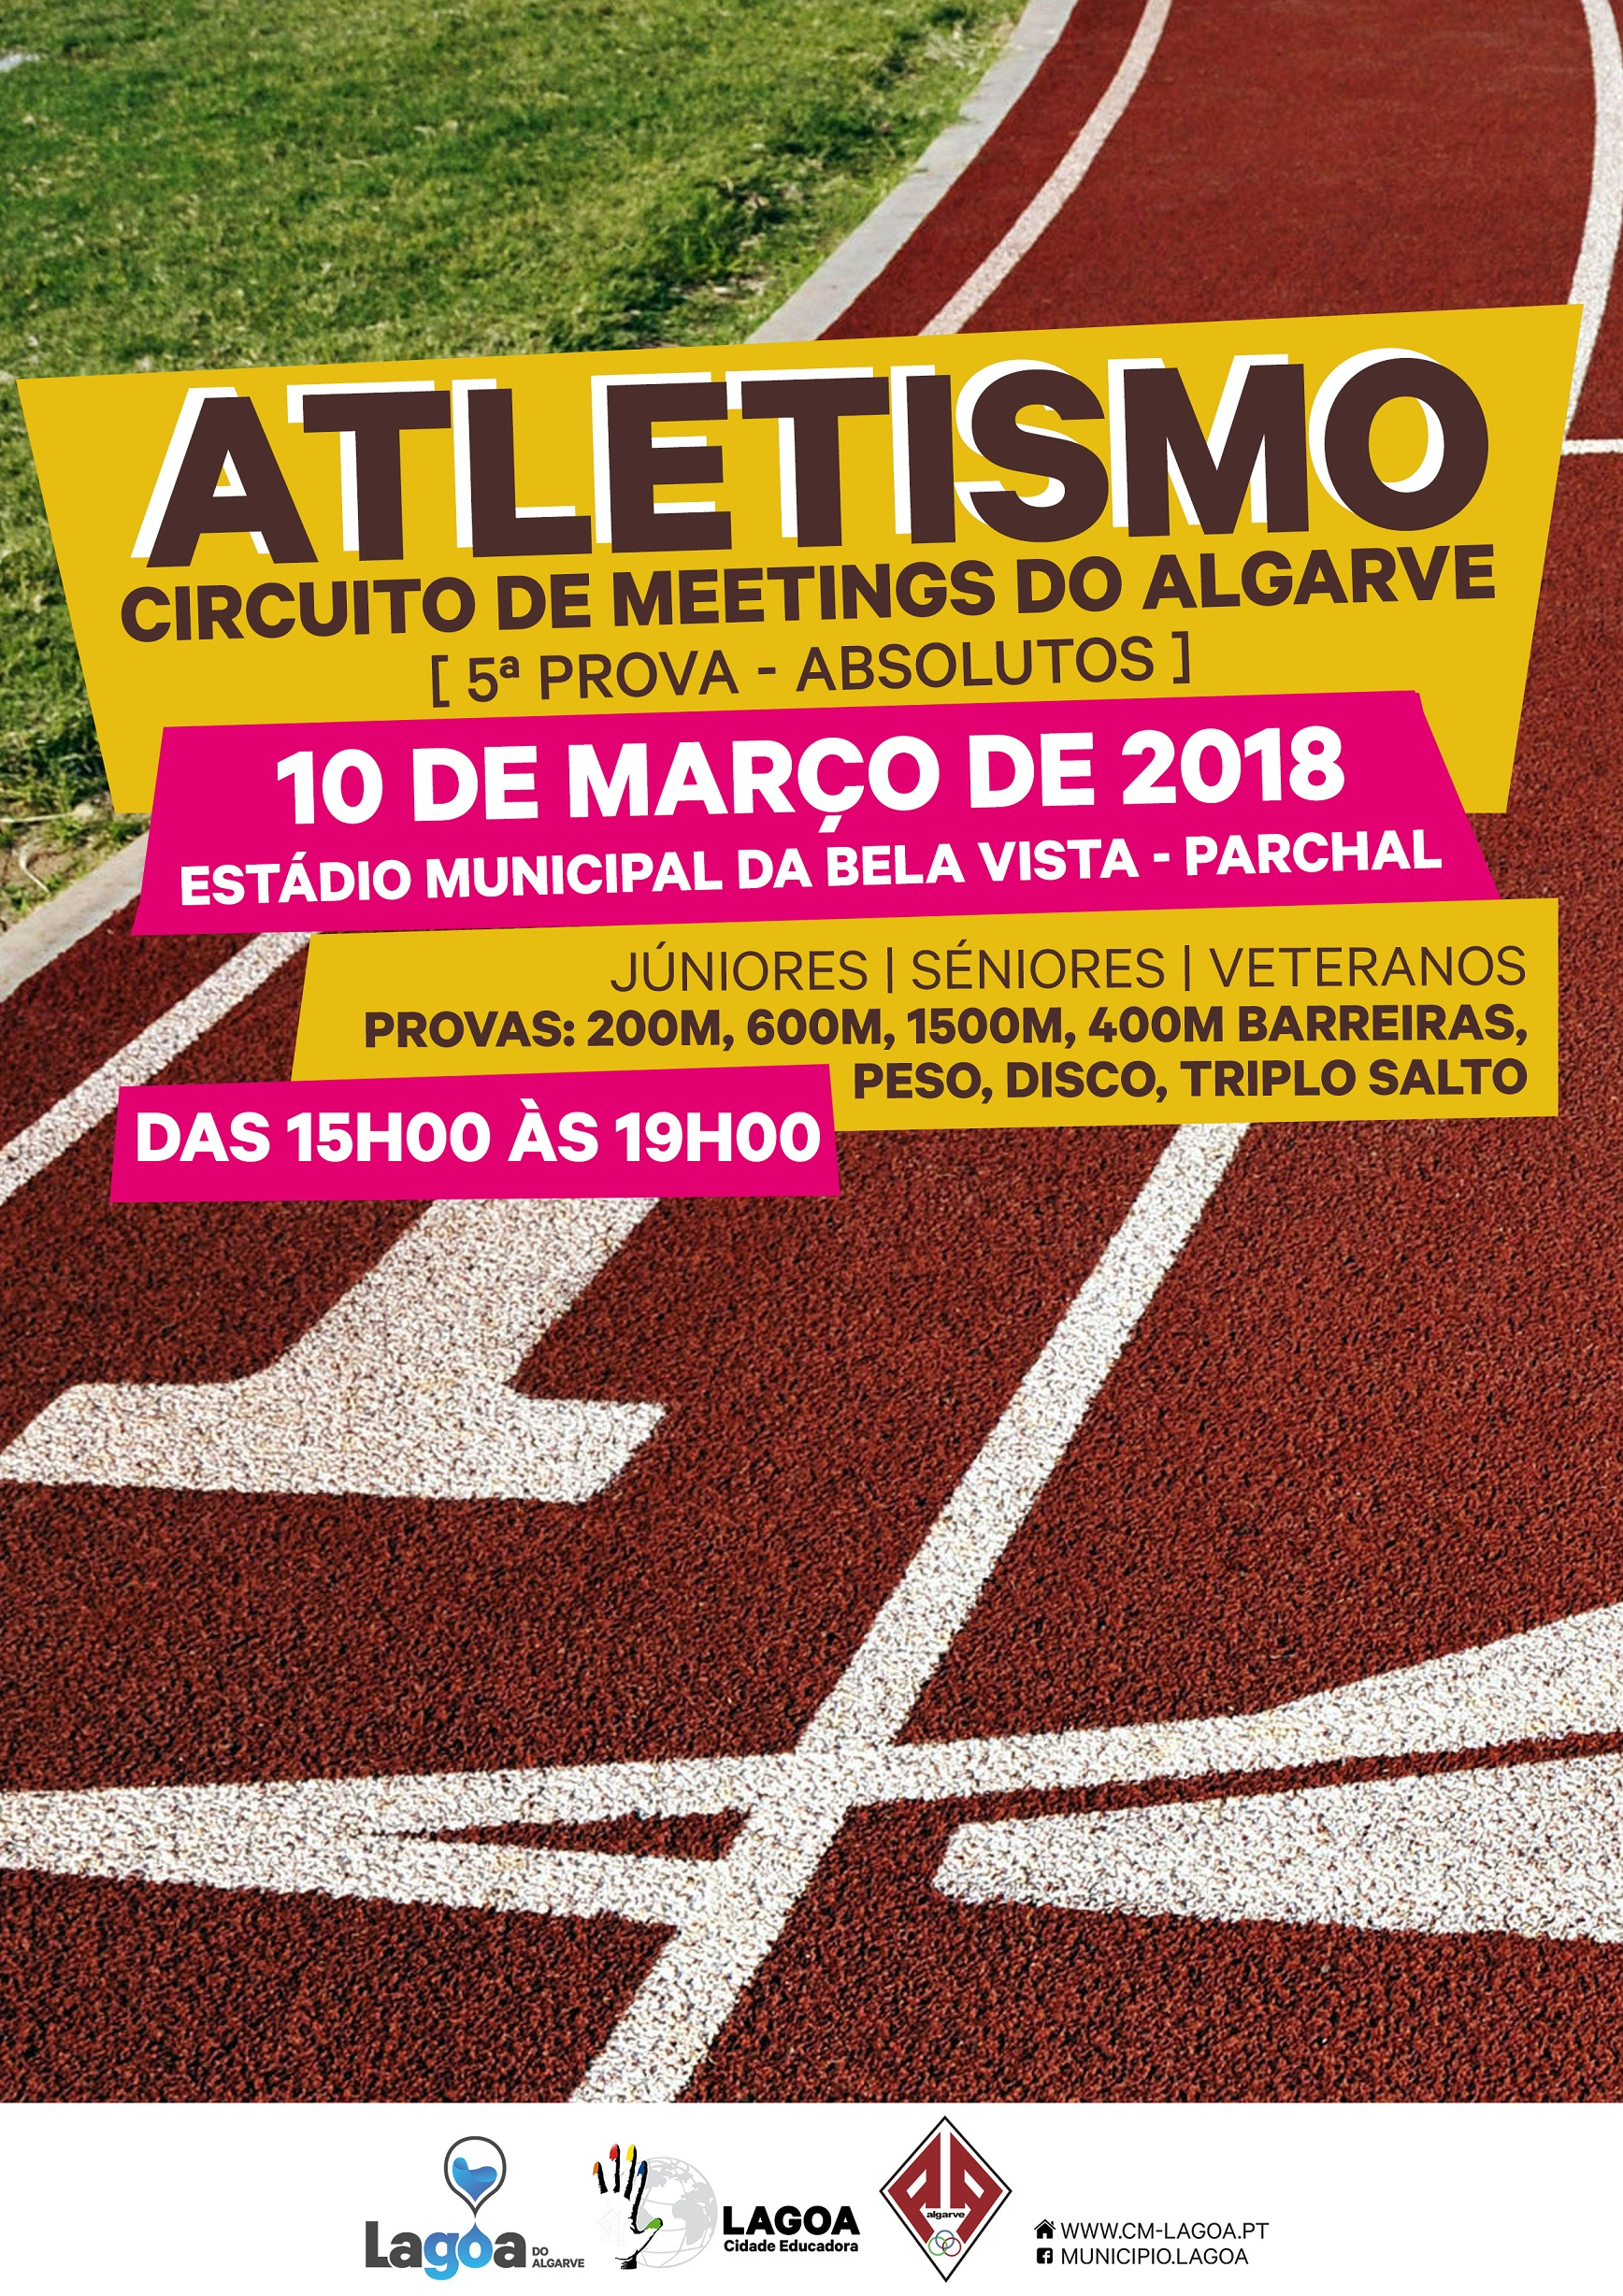 Circuito-de-Meetings-do-Algarve-5-Prova